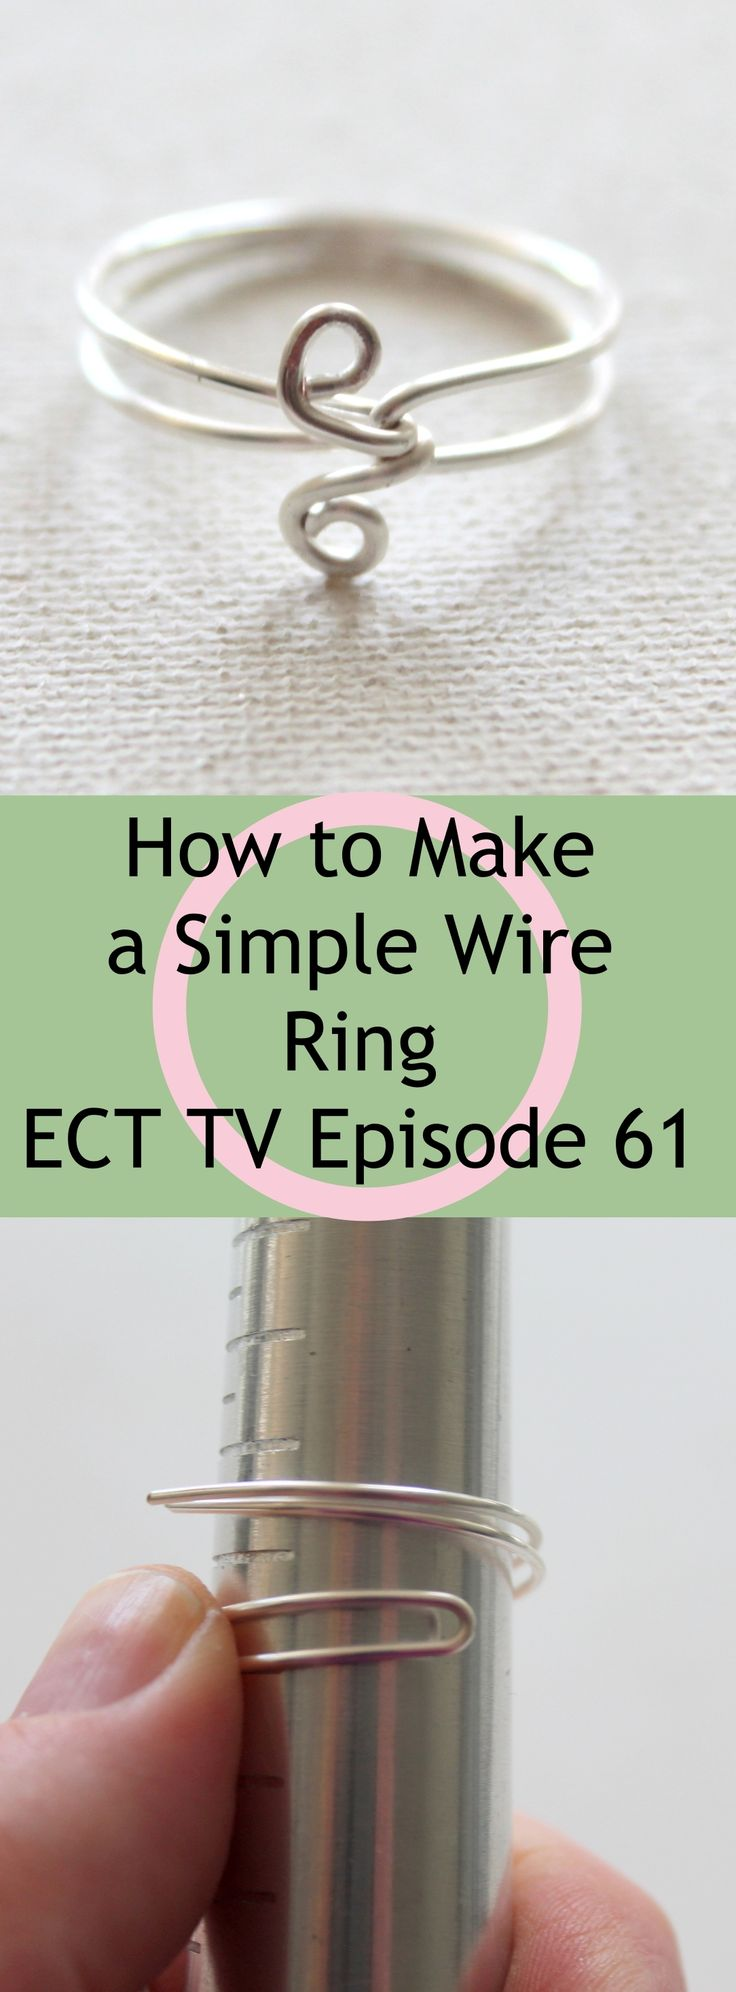 How To Make A Simple Wire Ring  Video Tutorial Plus Stepbystep